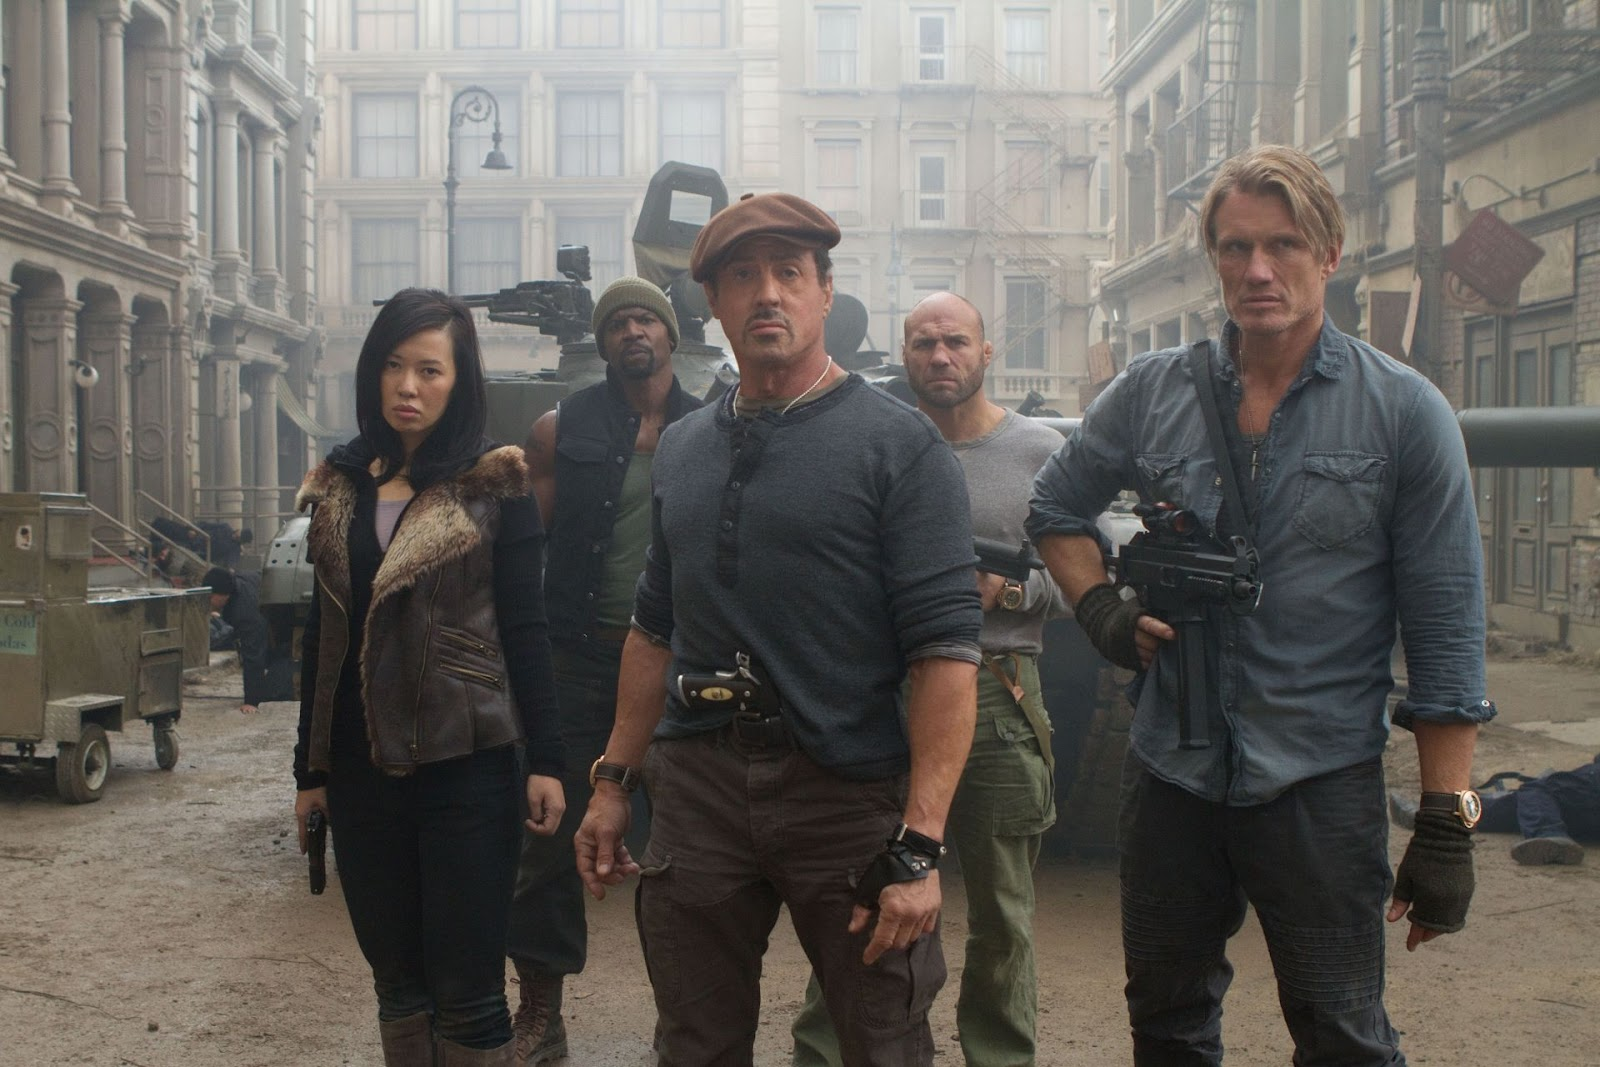 Sylvester Stallone In Expendables 2 Wallpapers: 'The Expendables 2': Masculinity Porn